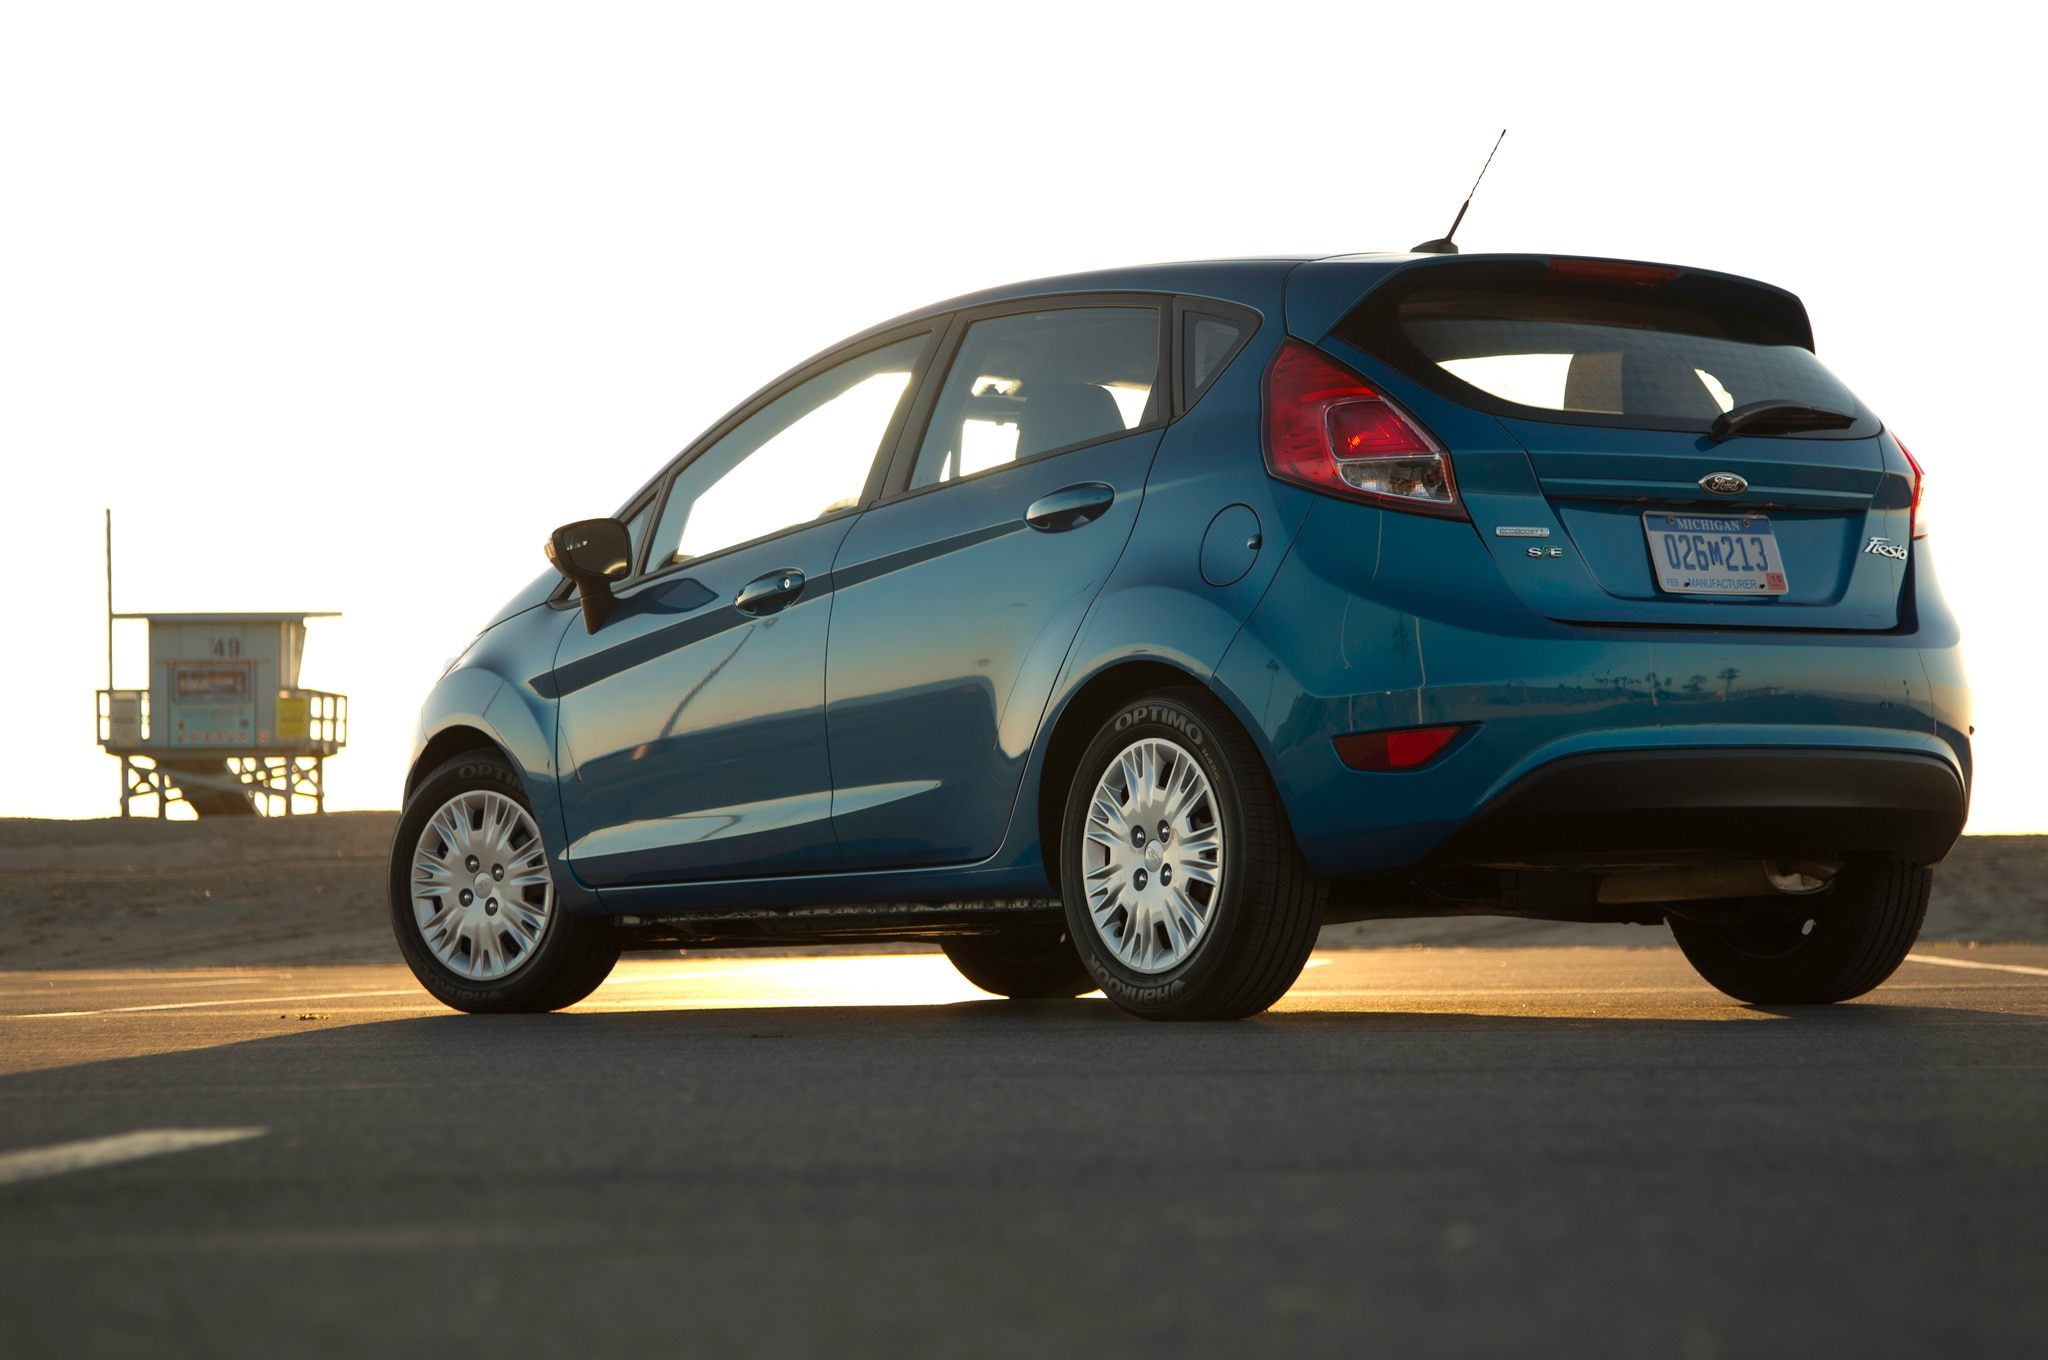 2014 Ford Fiesta SFE EcoBoost Rear Side View1